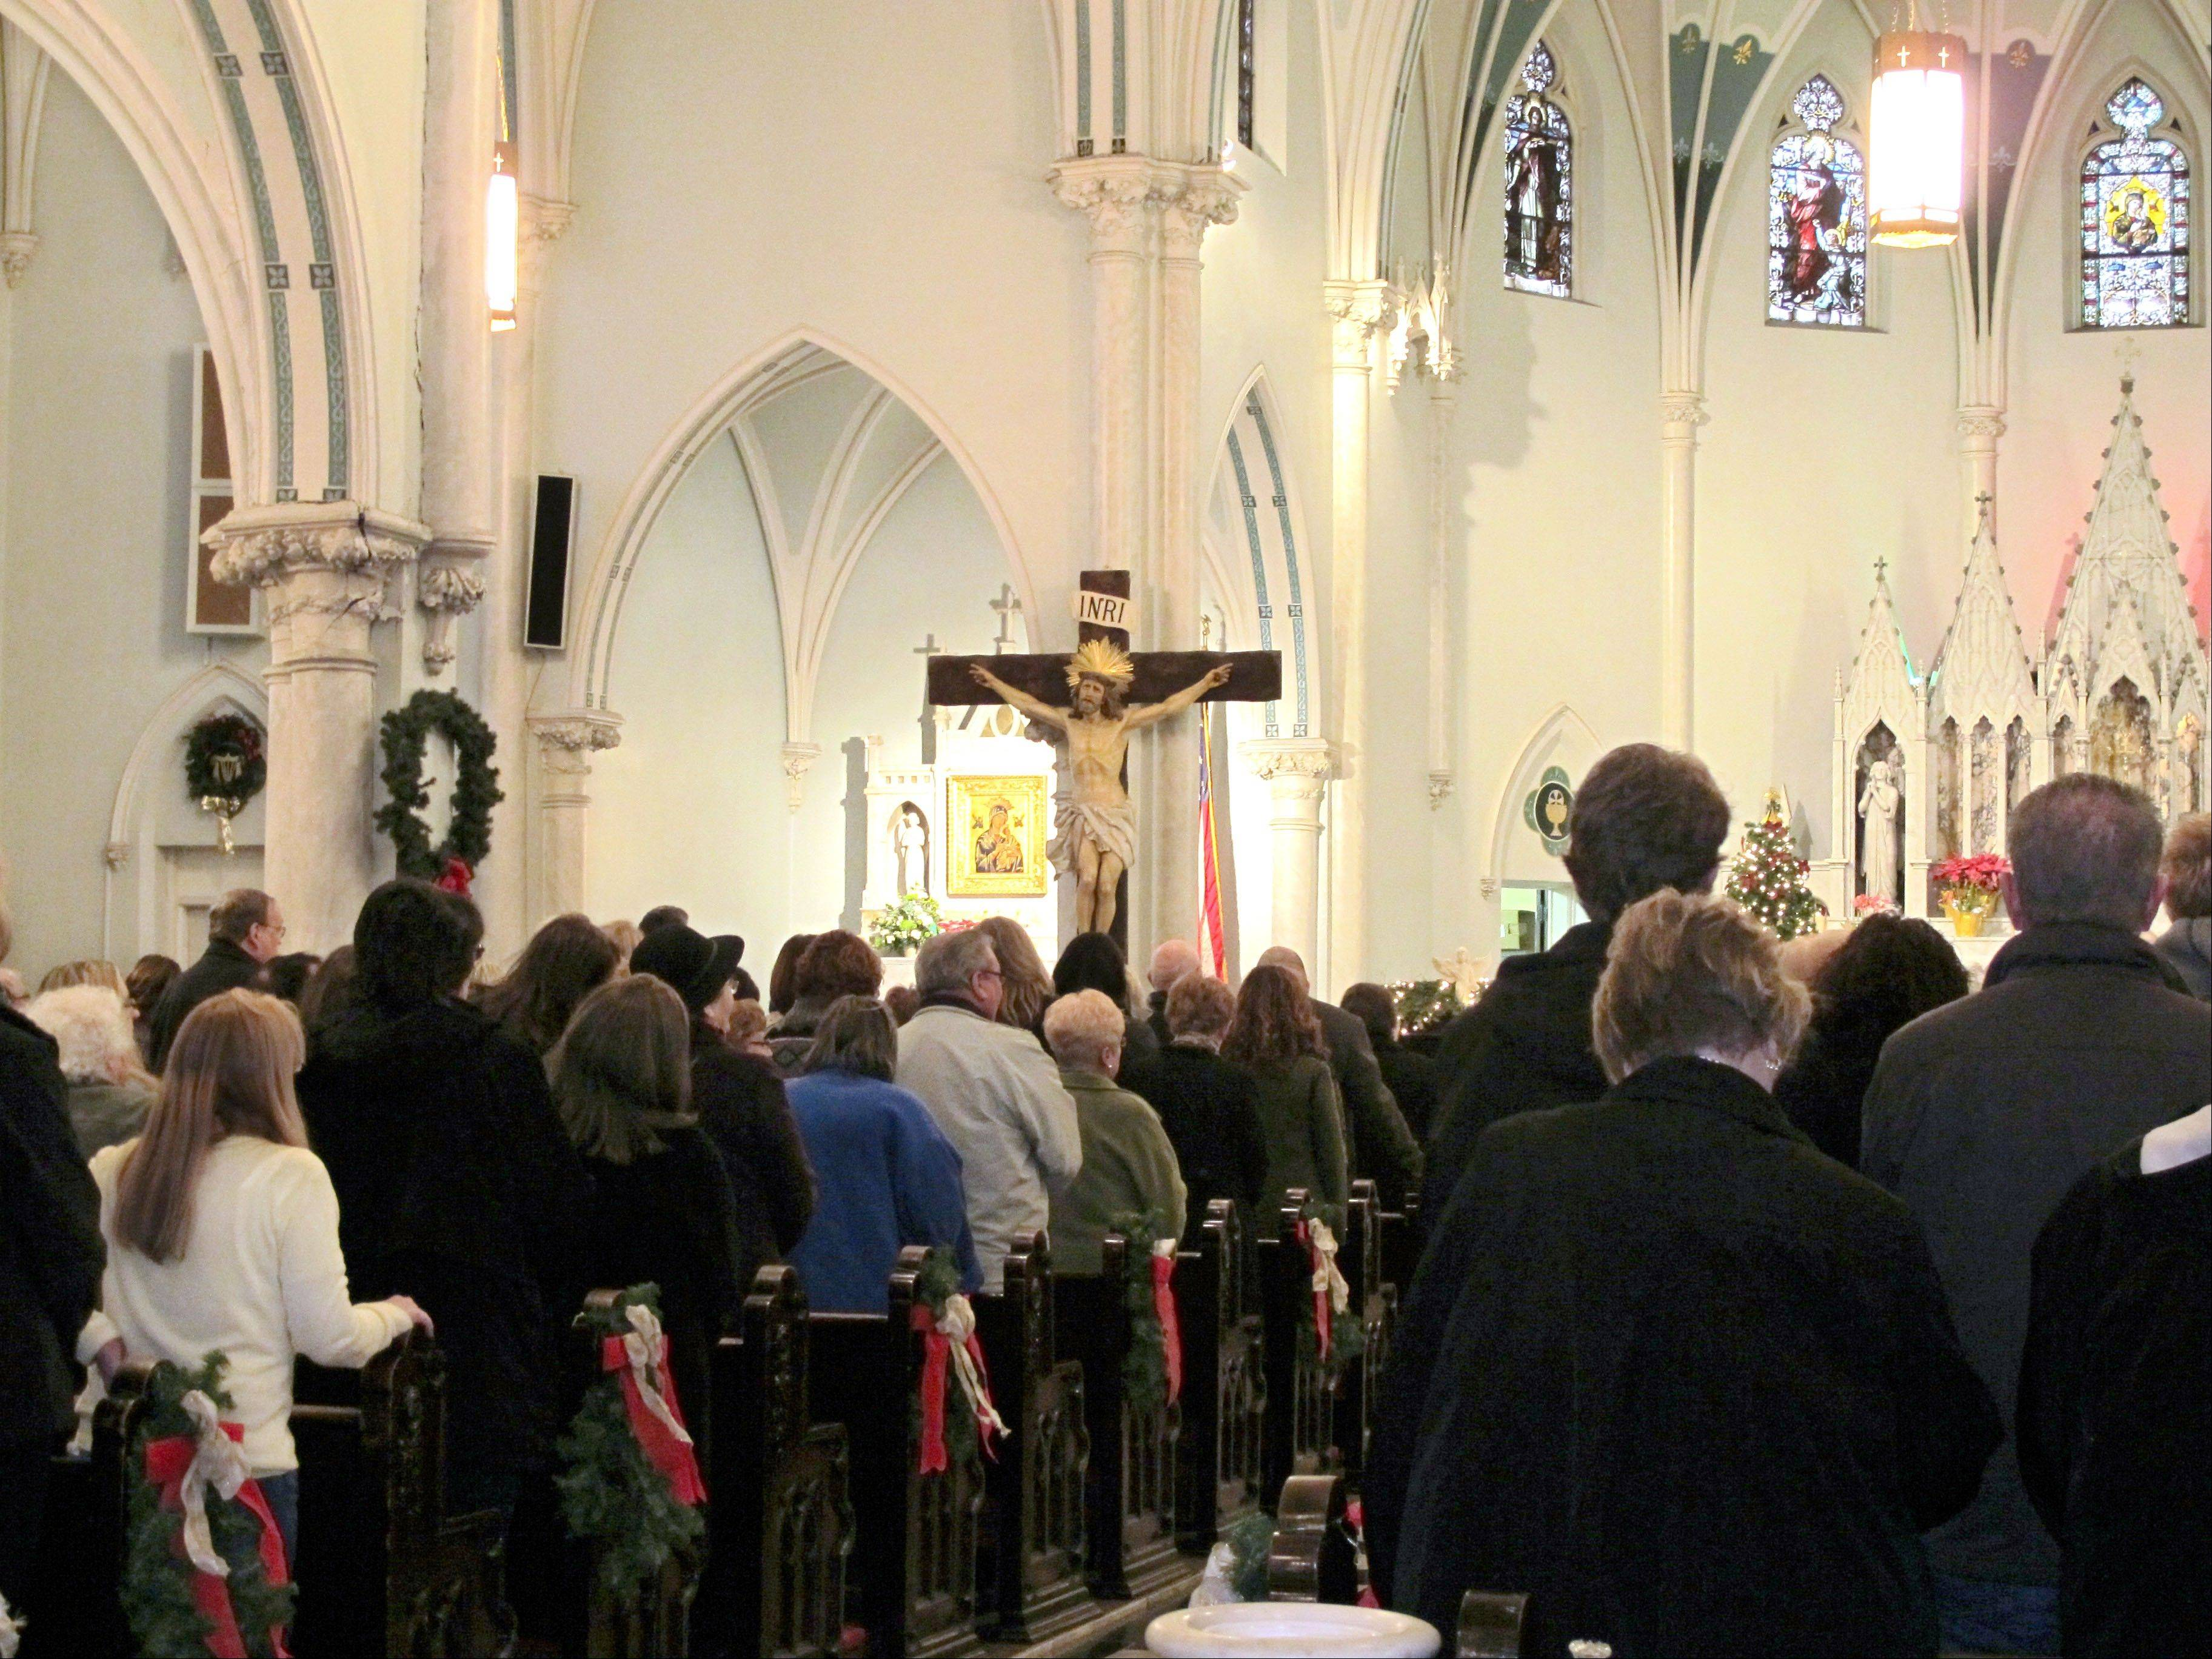 People gathered for mass inside Our Lady of Perpetual Help Church in Buffalo, N.Y., during a Mass mob. Borrowed from the idea of flash mobs, Mass mobs encourage crowds to attend Mass at a specified church on a certain day to fill pews, lift spirits and help financially some of the city's oldest but often sparsely attended churches.